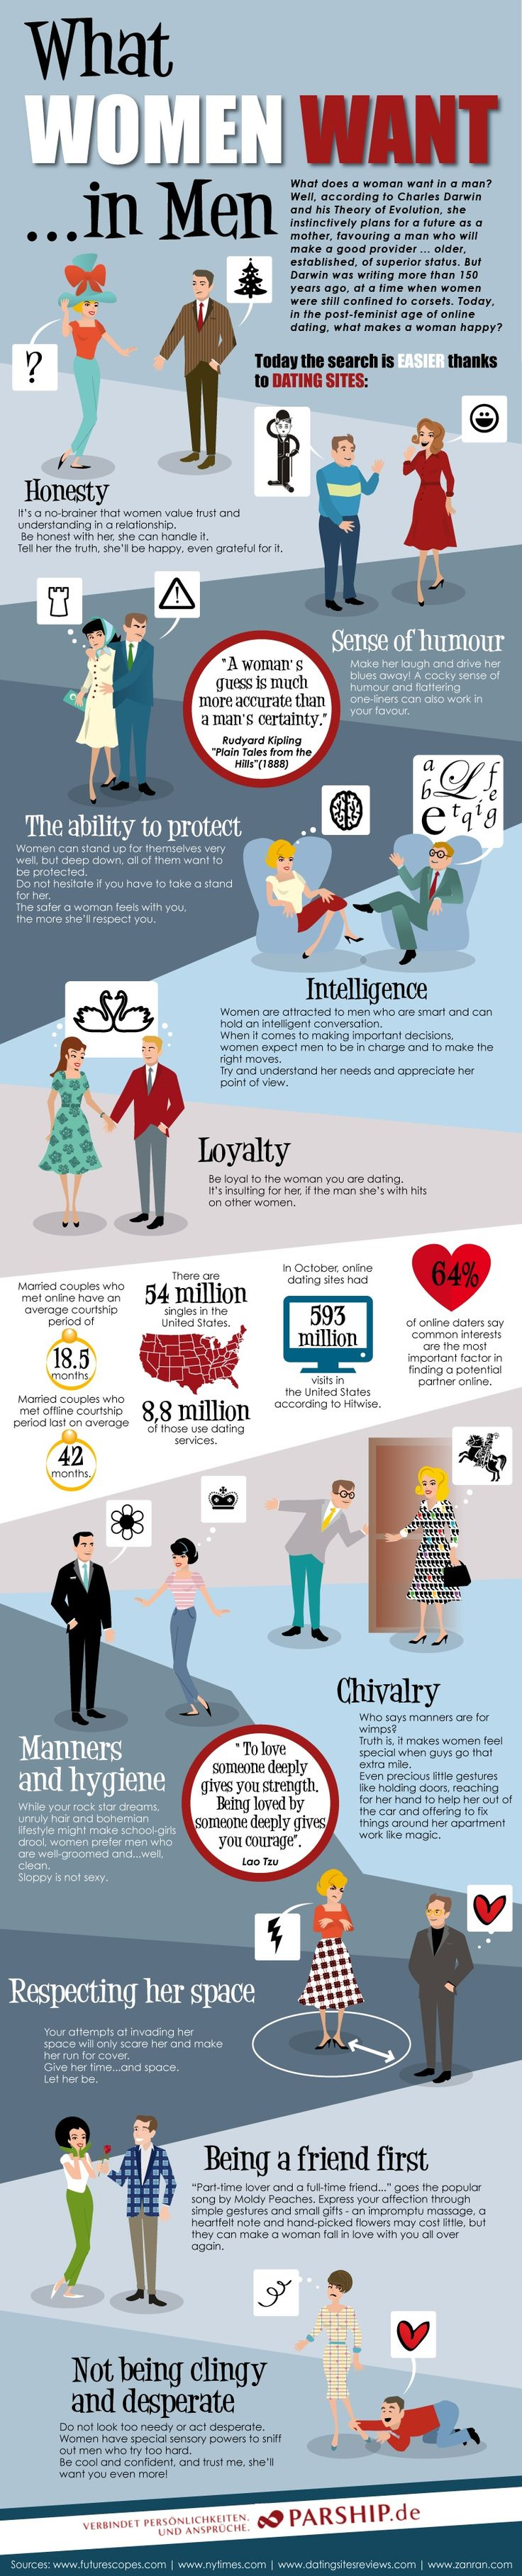 Infographic: What Women want in Men...... All men need to be is - Honest, funny, able to protect (but you have to respect her space), smart, loyal (but not clingy), clean (yes, wash your face and trim your neckbeard), chivalrous (but not desperate), well mannered, and her BFF....That's it.